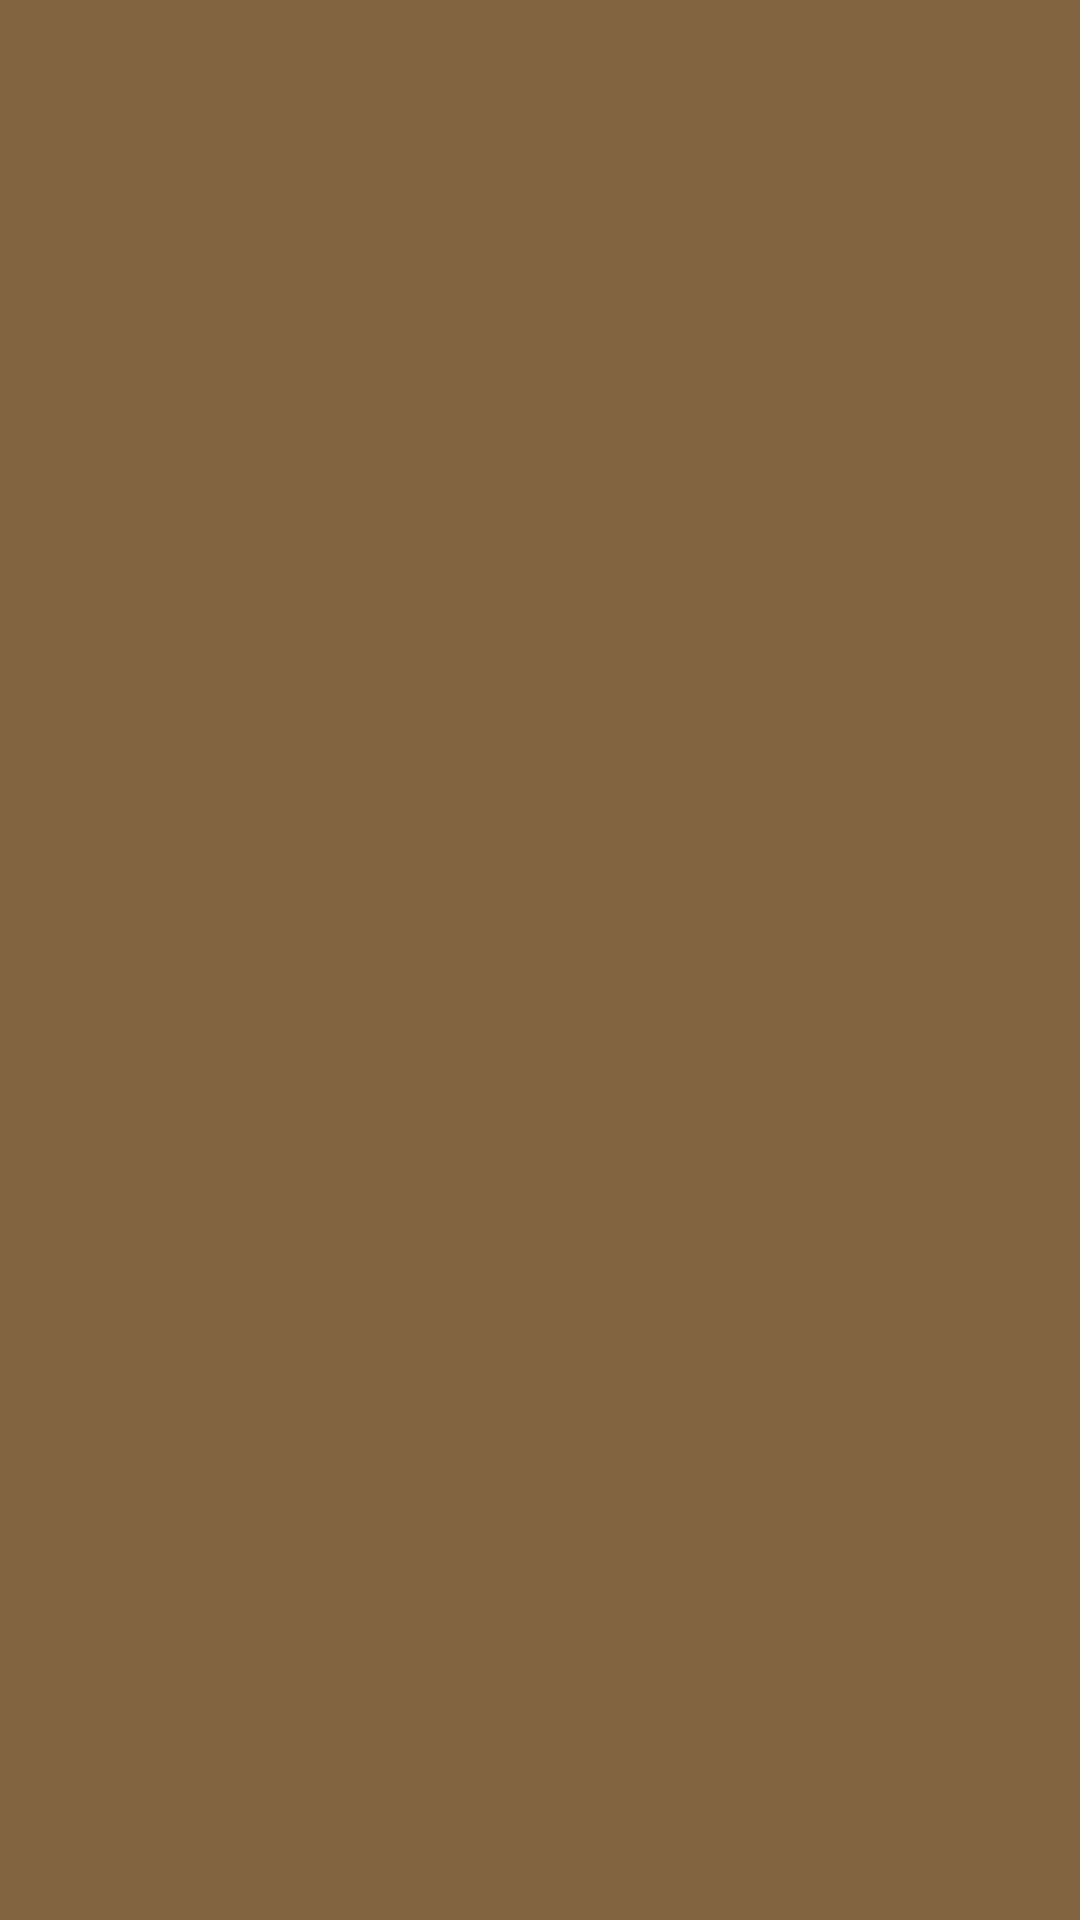 1080x1920 Raw Umber Solid Color Background